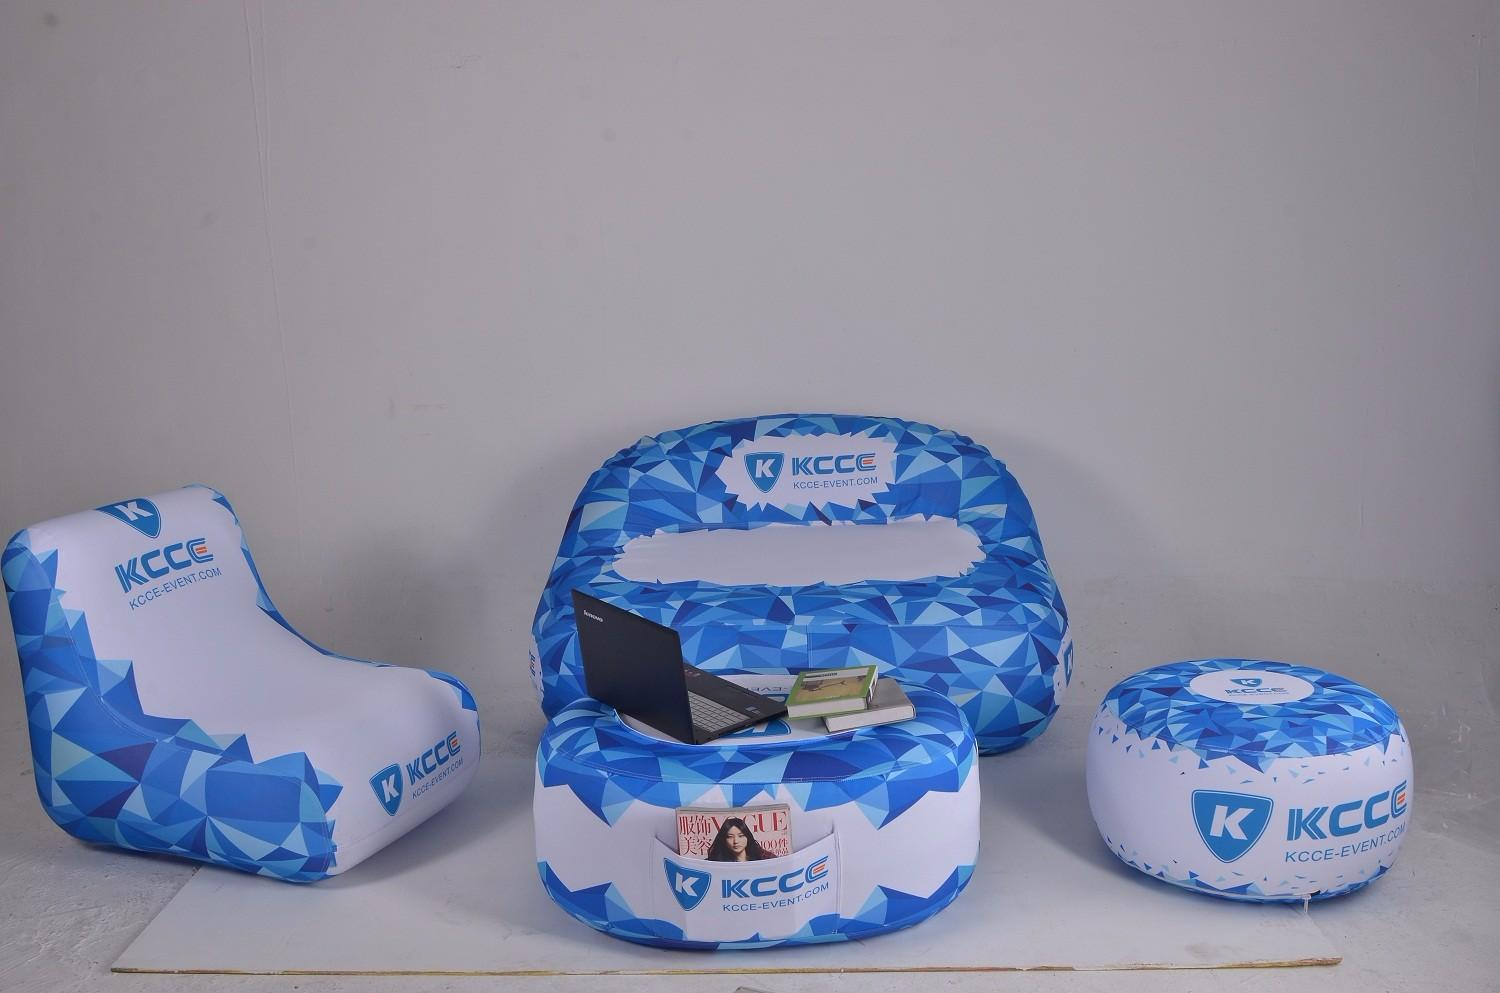 KCCE custom inflatable ottoman company for sale